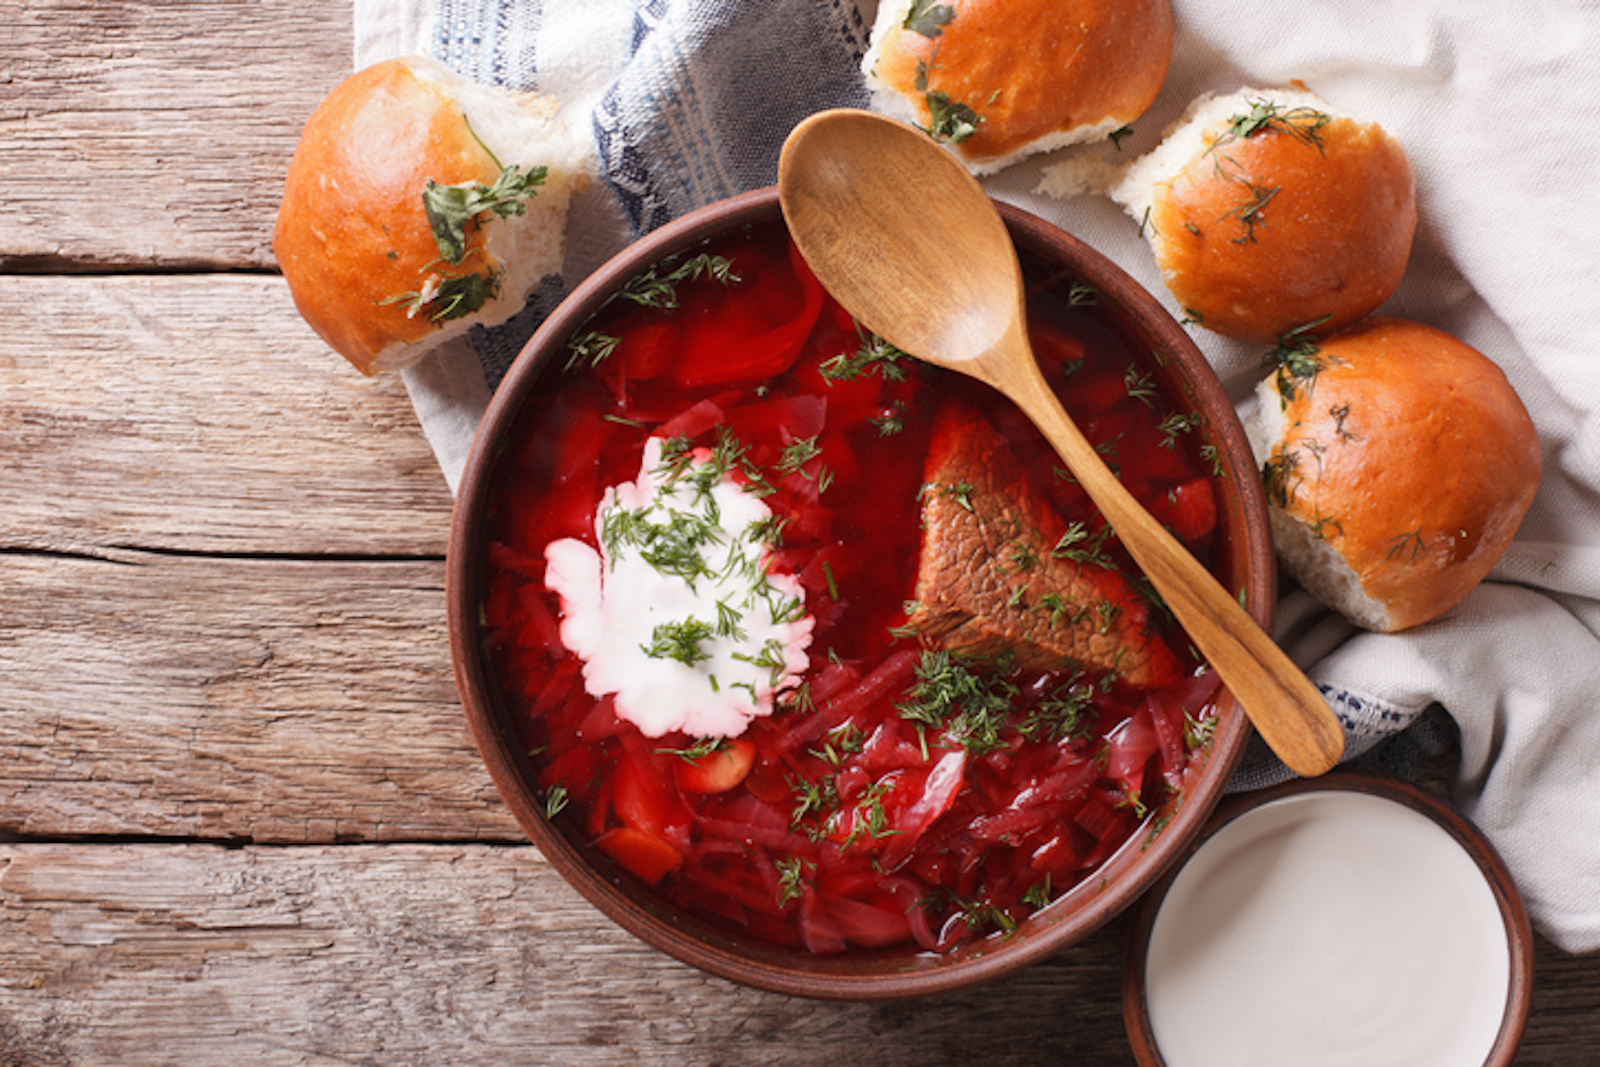 let's learn how to make borsch